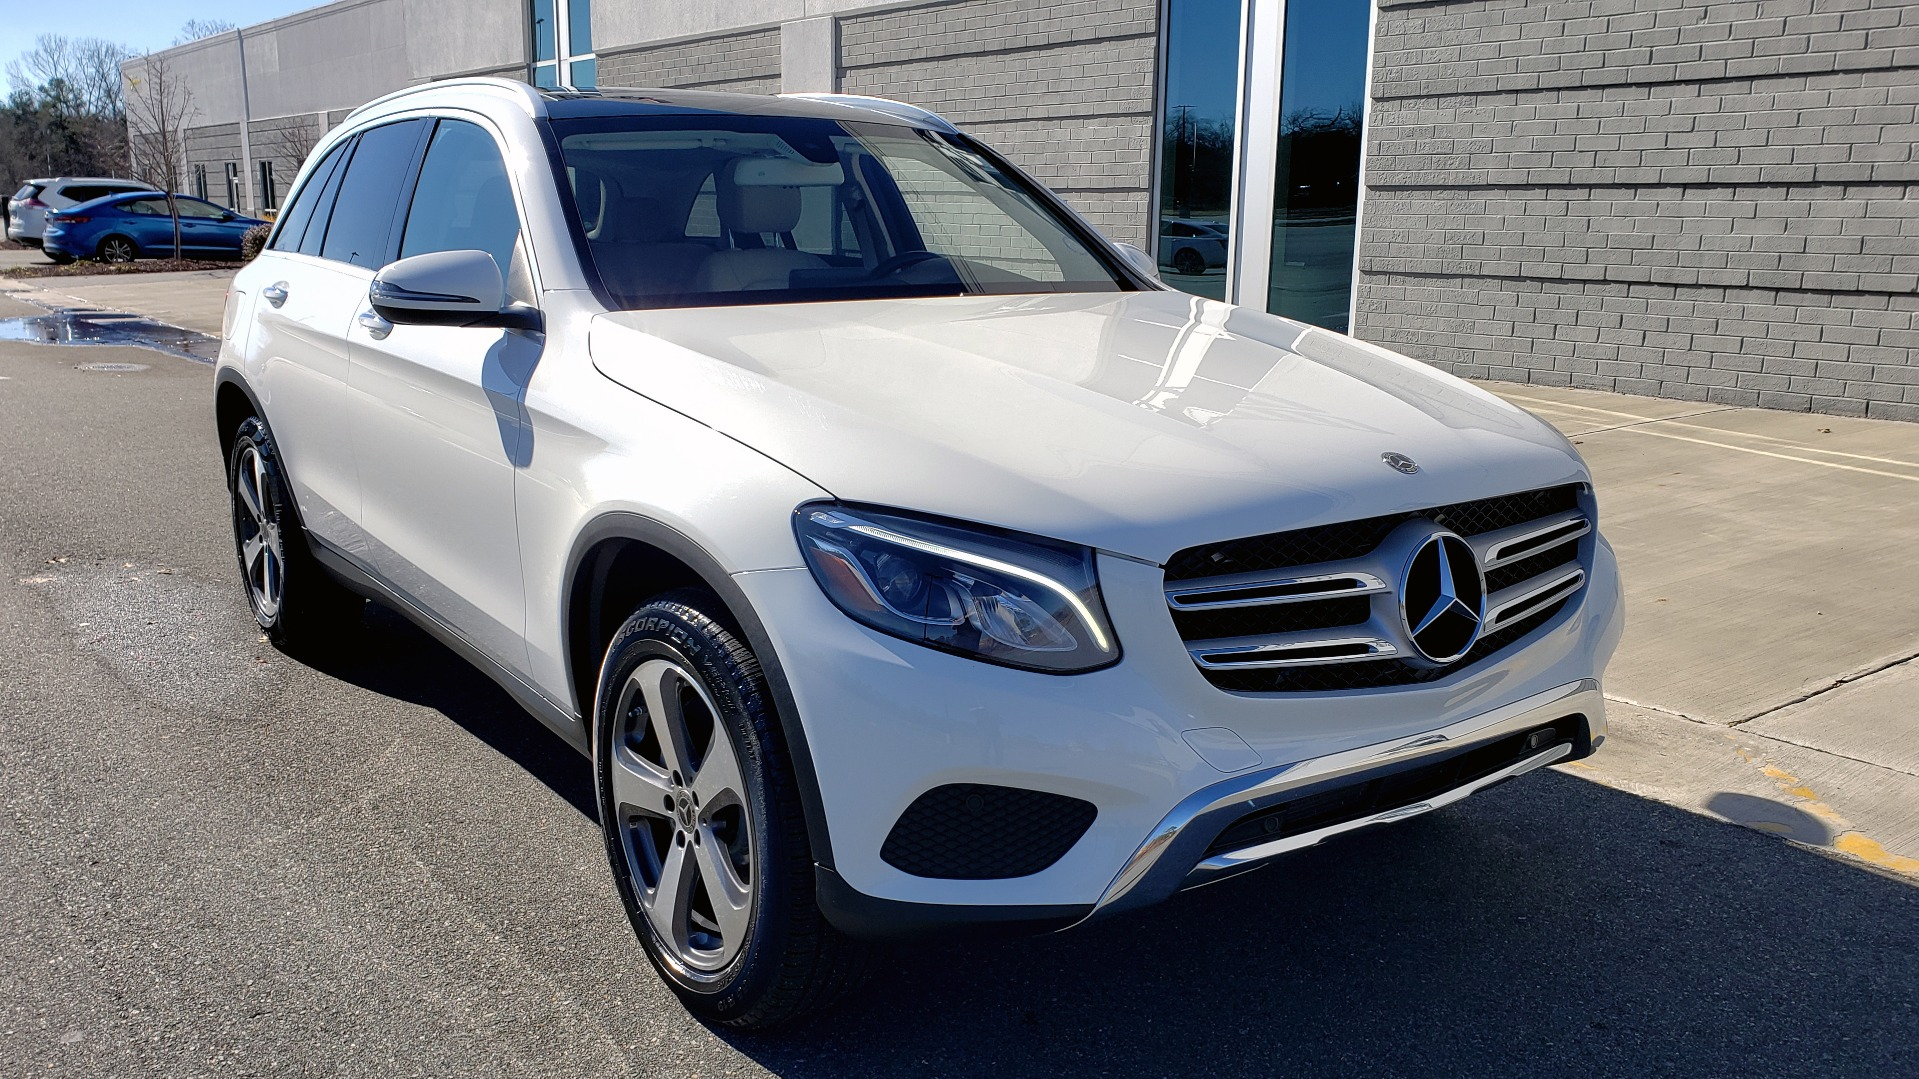 Used 2018 Mercedes-Benz GLC 300 4MATIC / PREM PKG / NAV / SUNROOF / REARVIEW for sale $36,995 at Formula Imports in Charlotte NC 28227 4